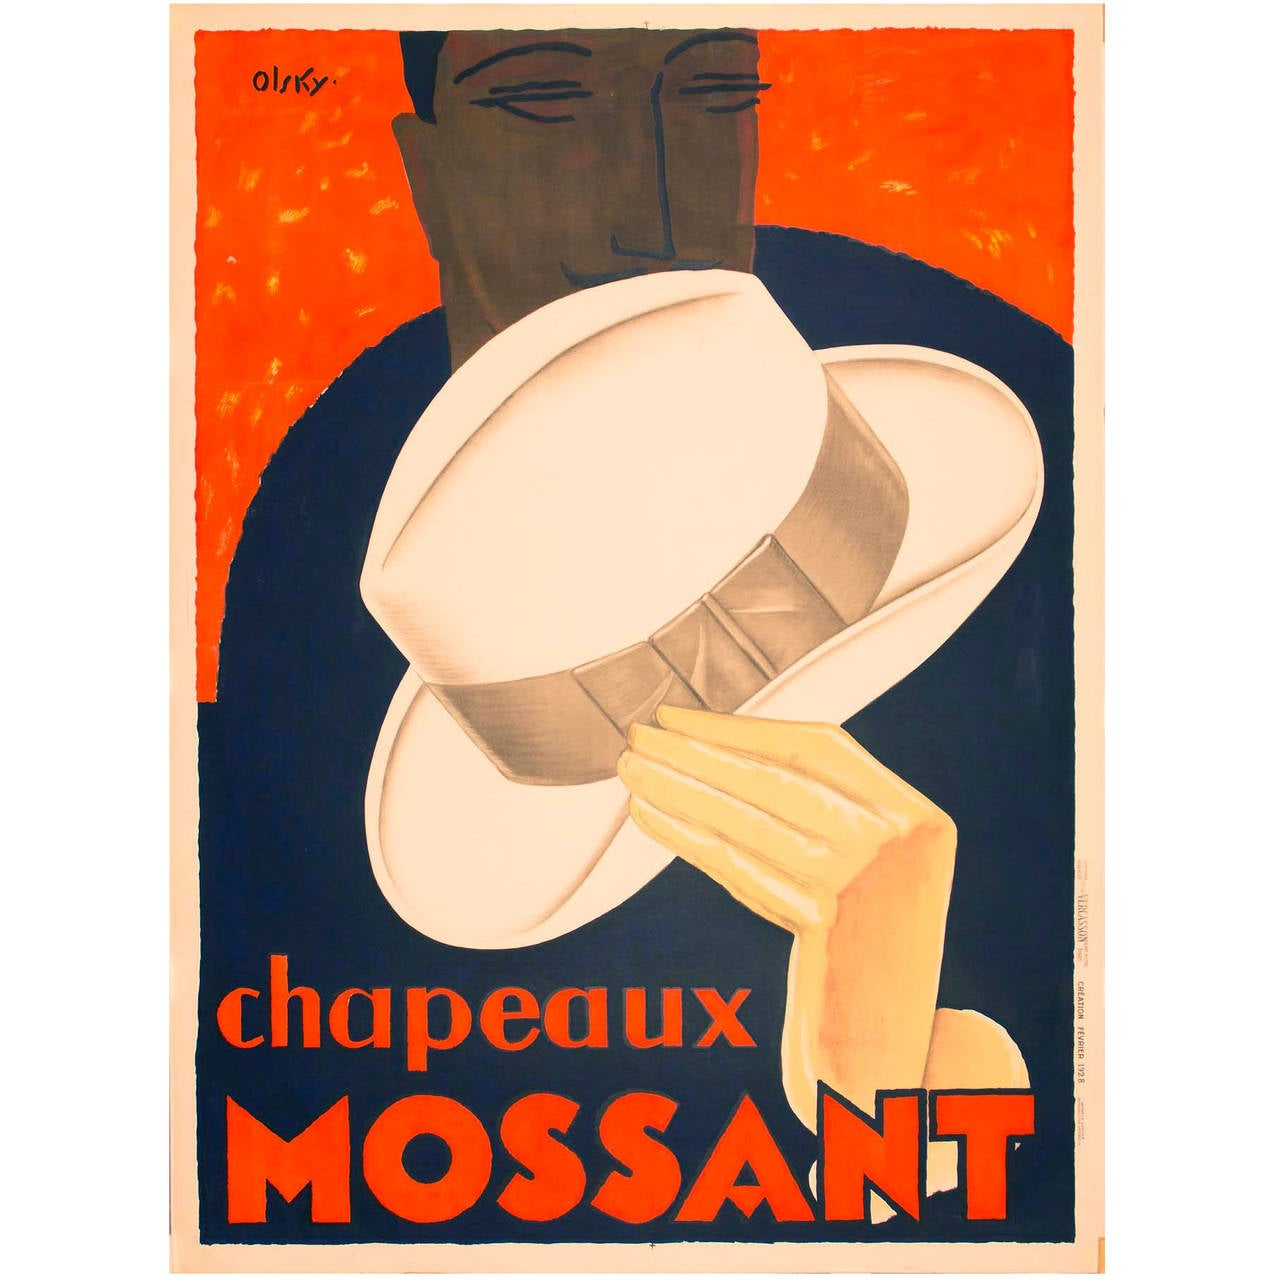 Original French Art Deco Chapeaux Mossant Poster by Olsky For Sale